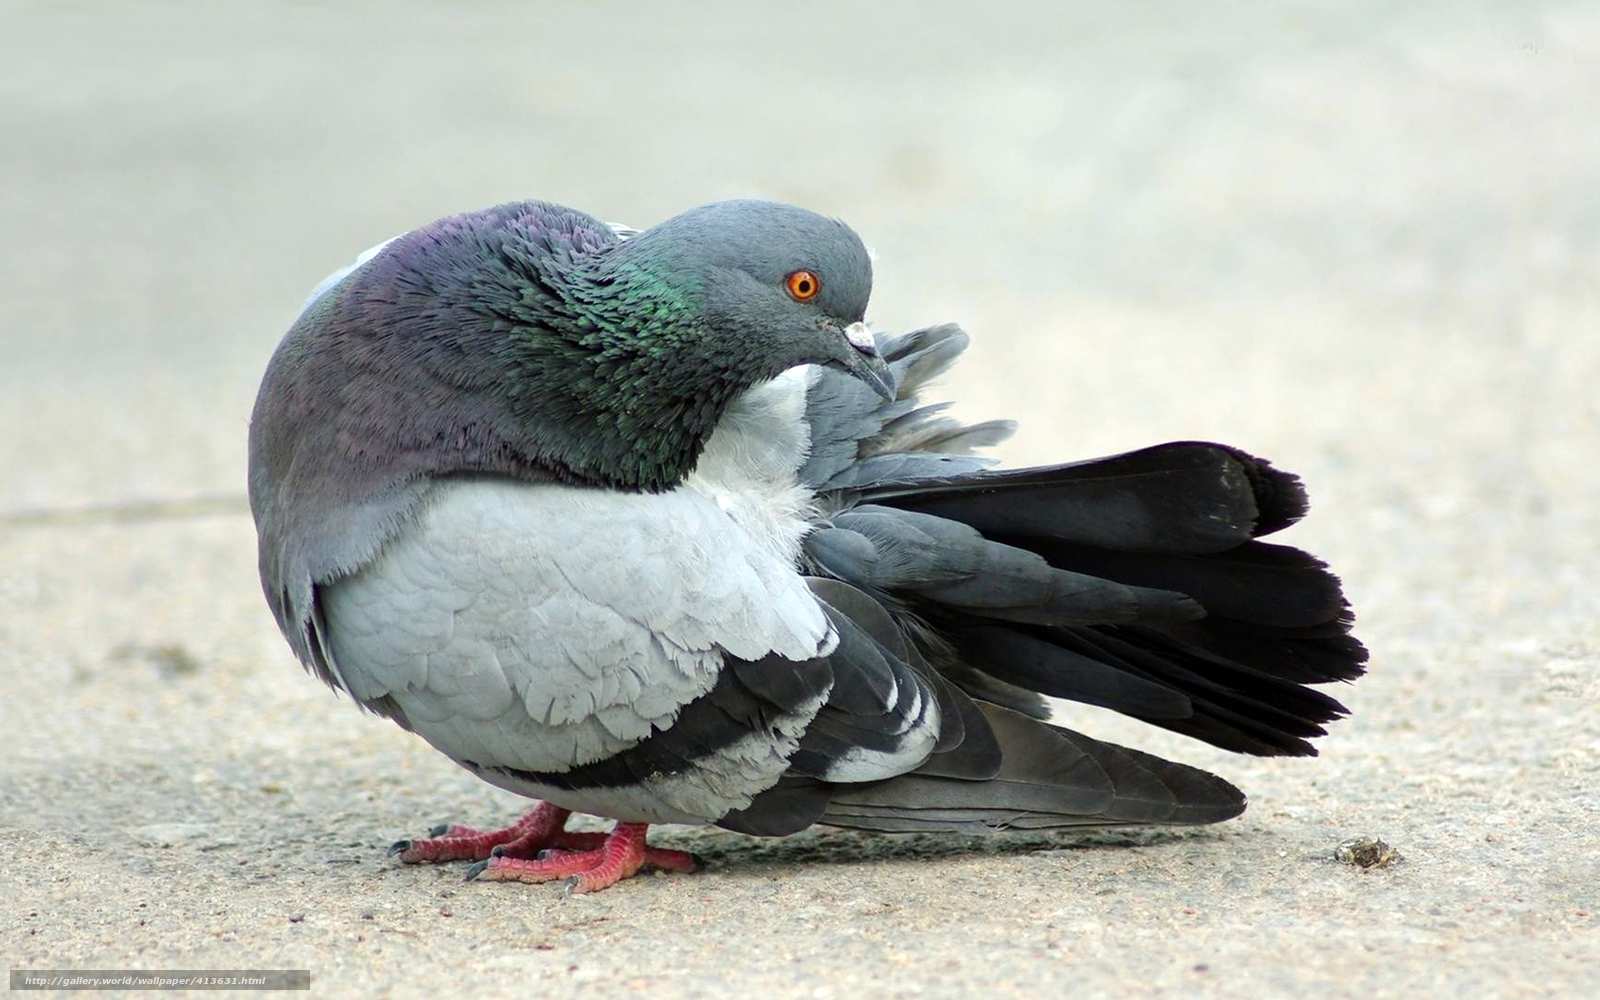 pigeon feathers A&p and other stories study guide contains a biography of john updike, literature essays, quiz questions, major themes, characters, and a full summary and analysis.